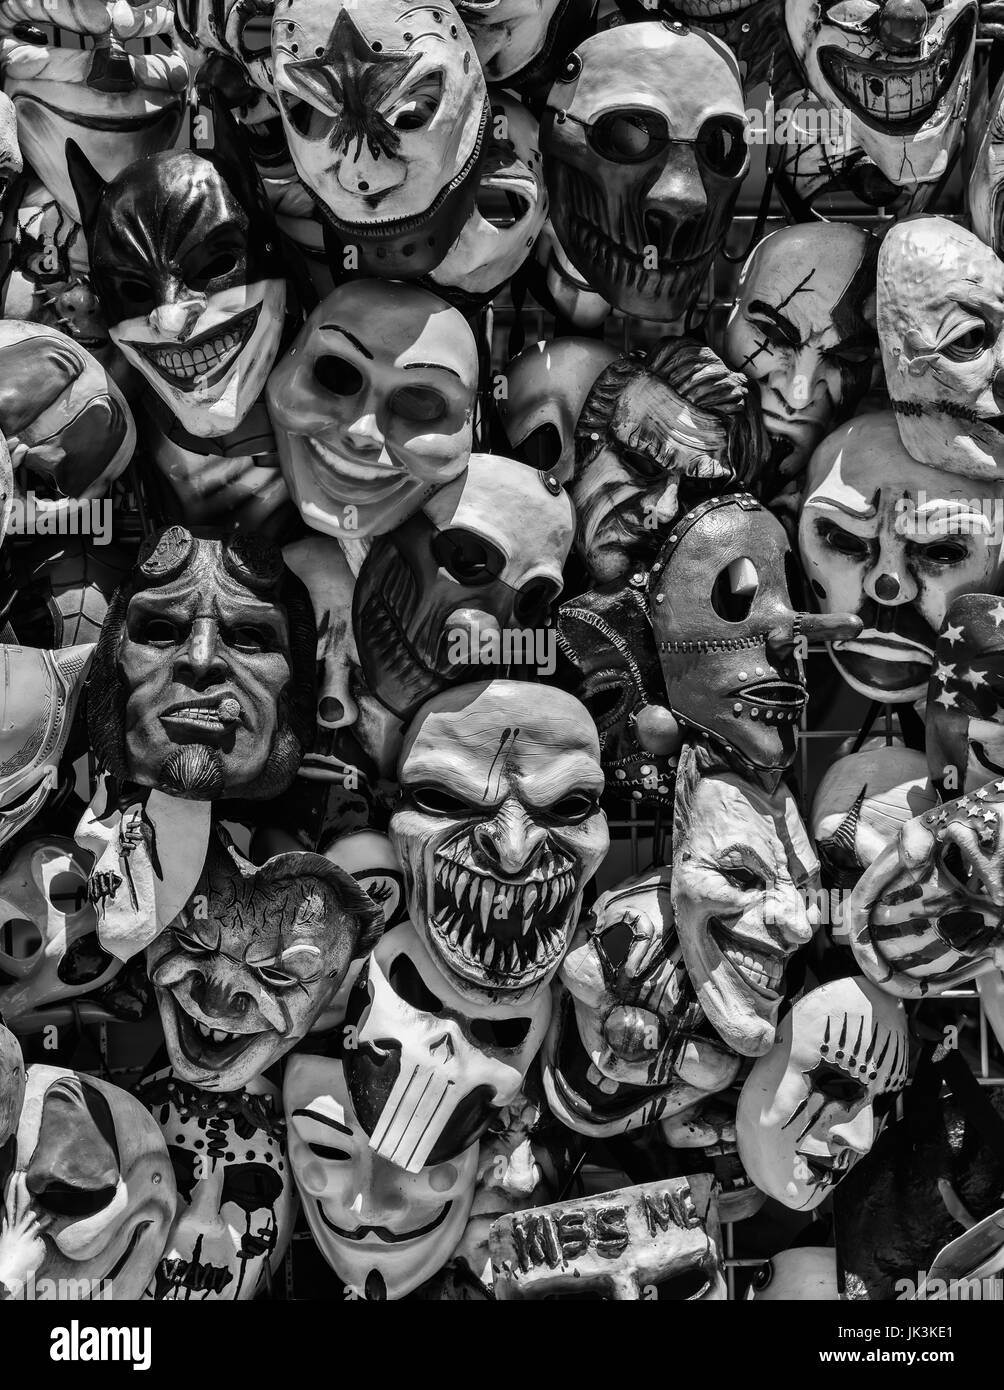 Odd and creepy masks for sale at the Cal Expo State Fair in Sacramento, California. - Stock Image